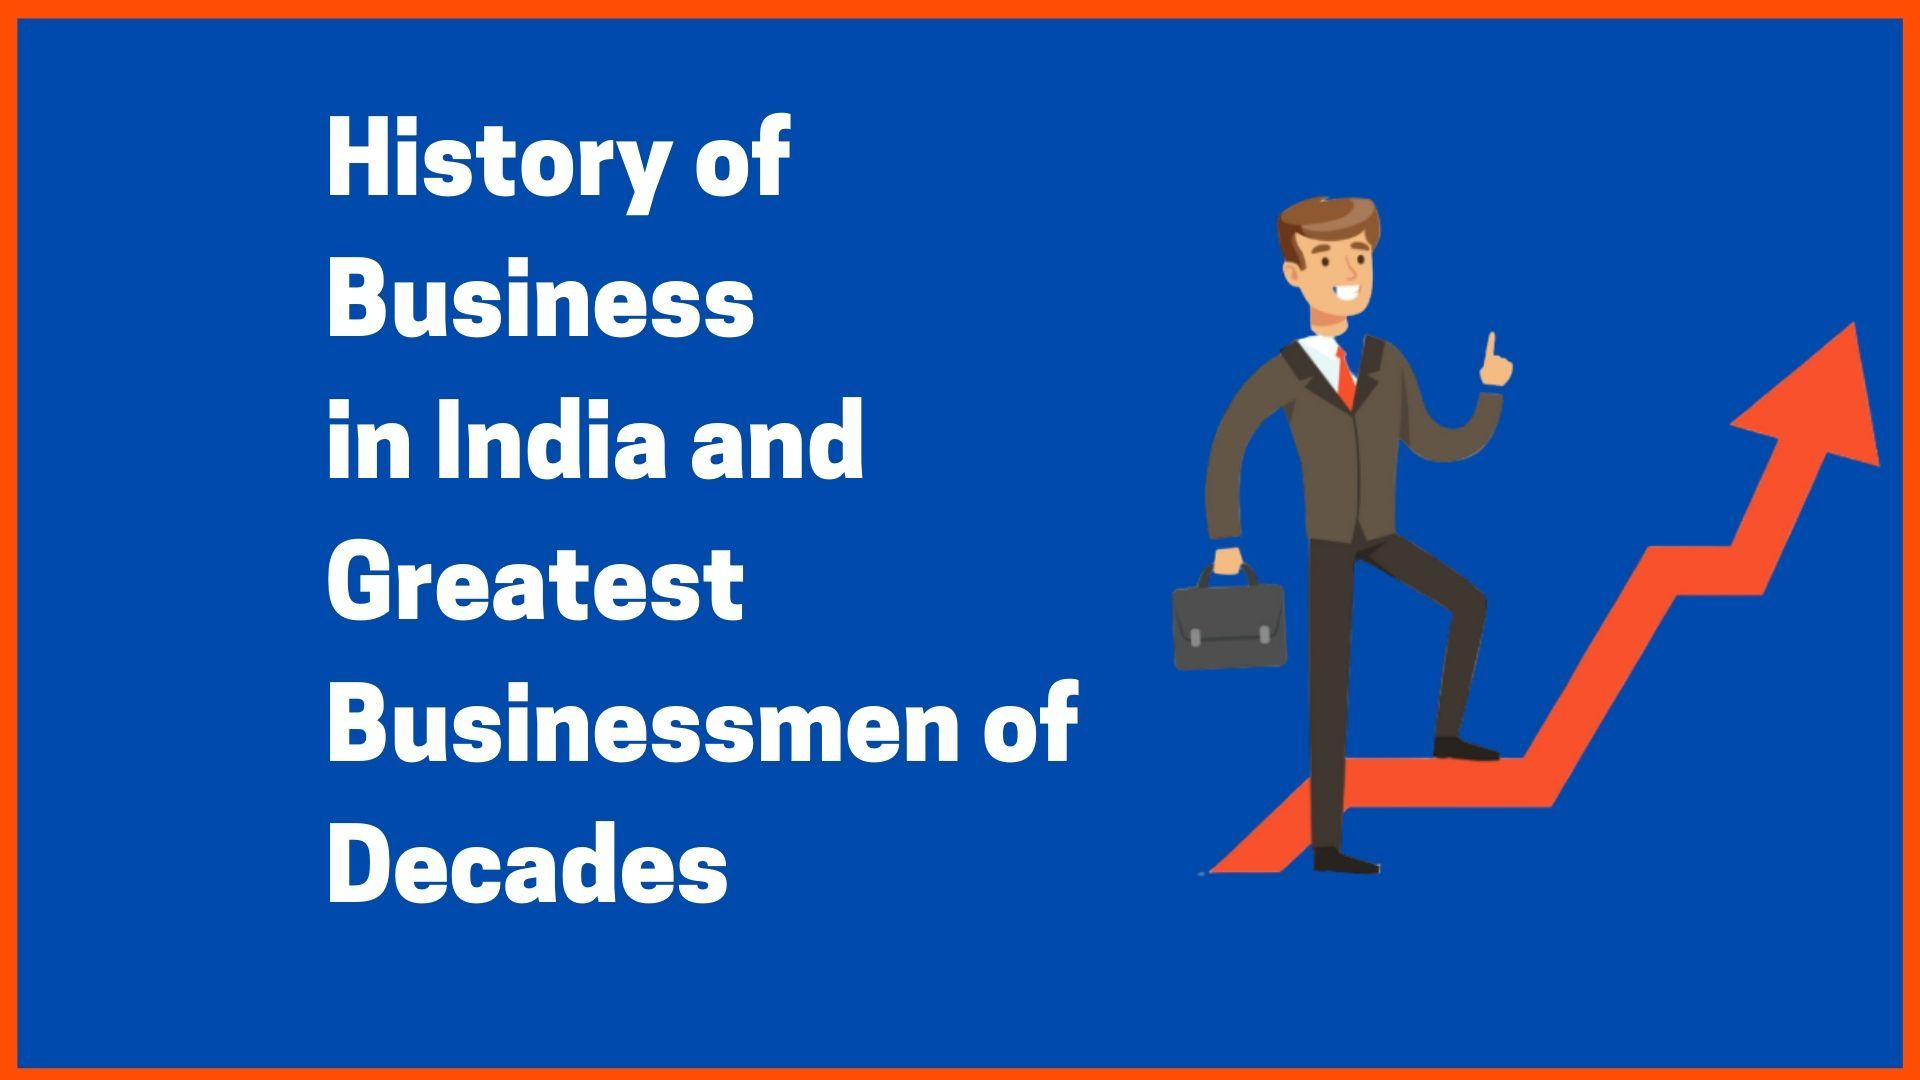 History of Business in India and Greatest Businessmen of Decades